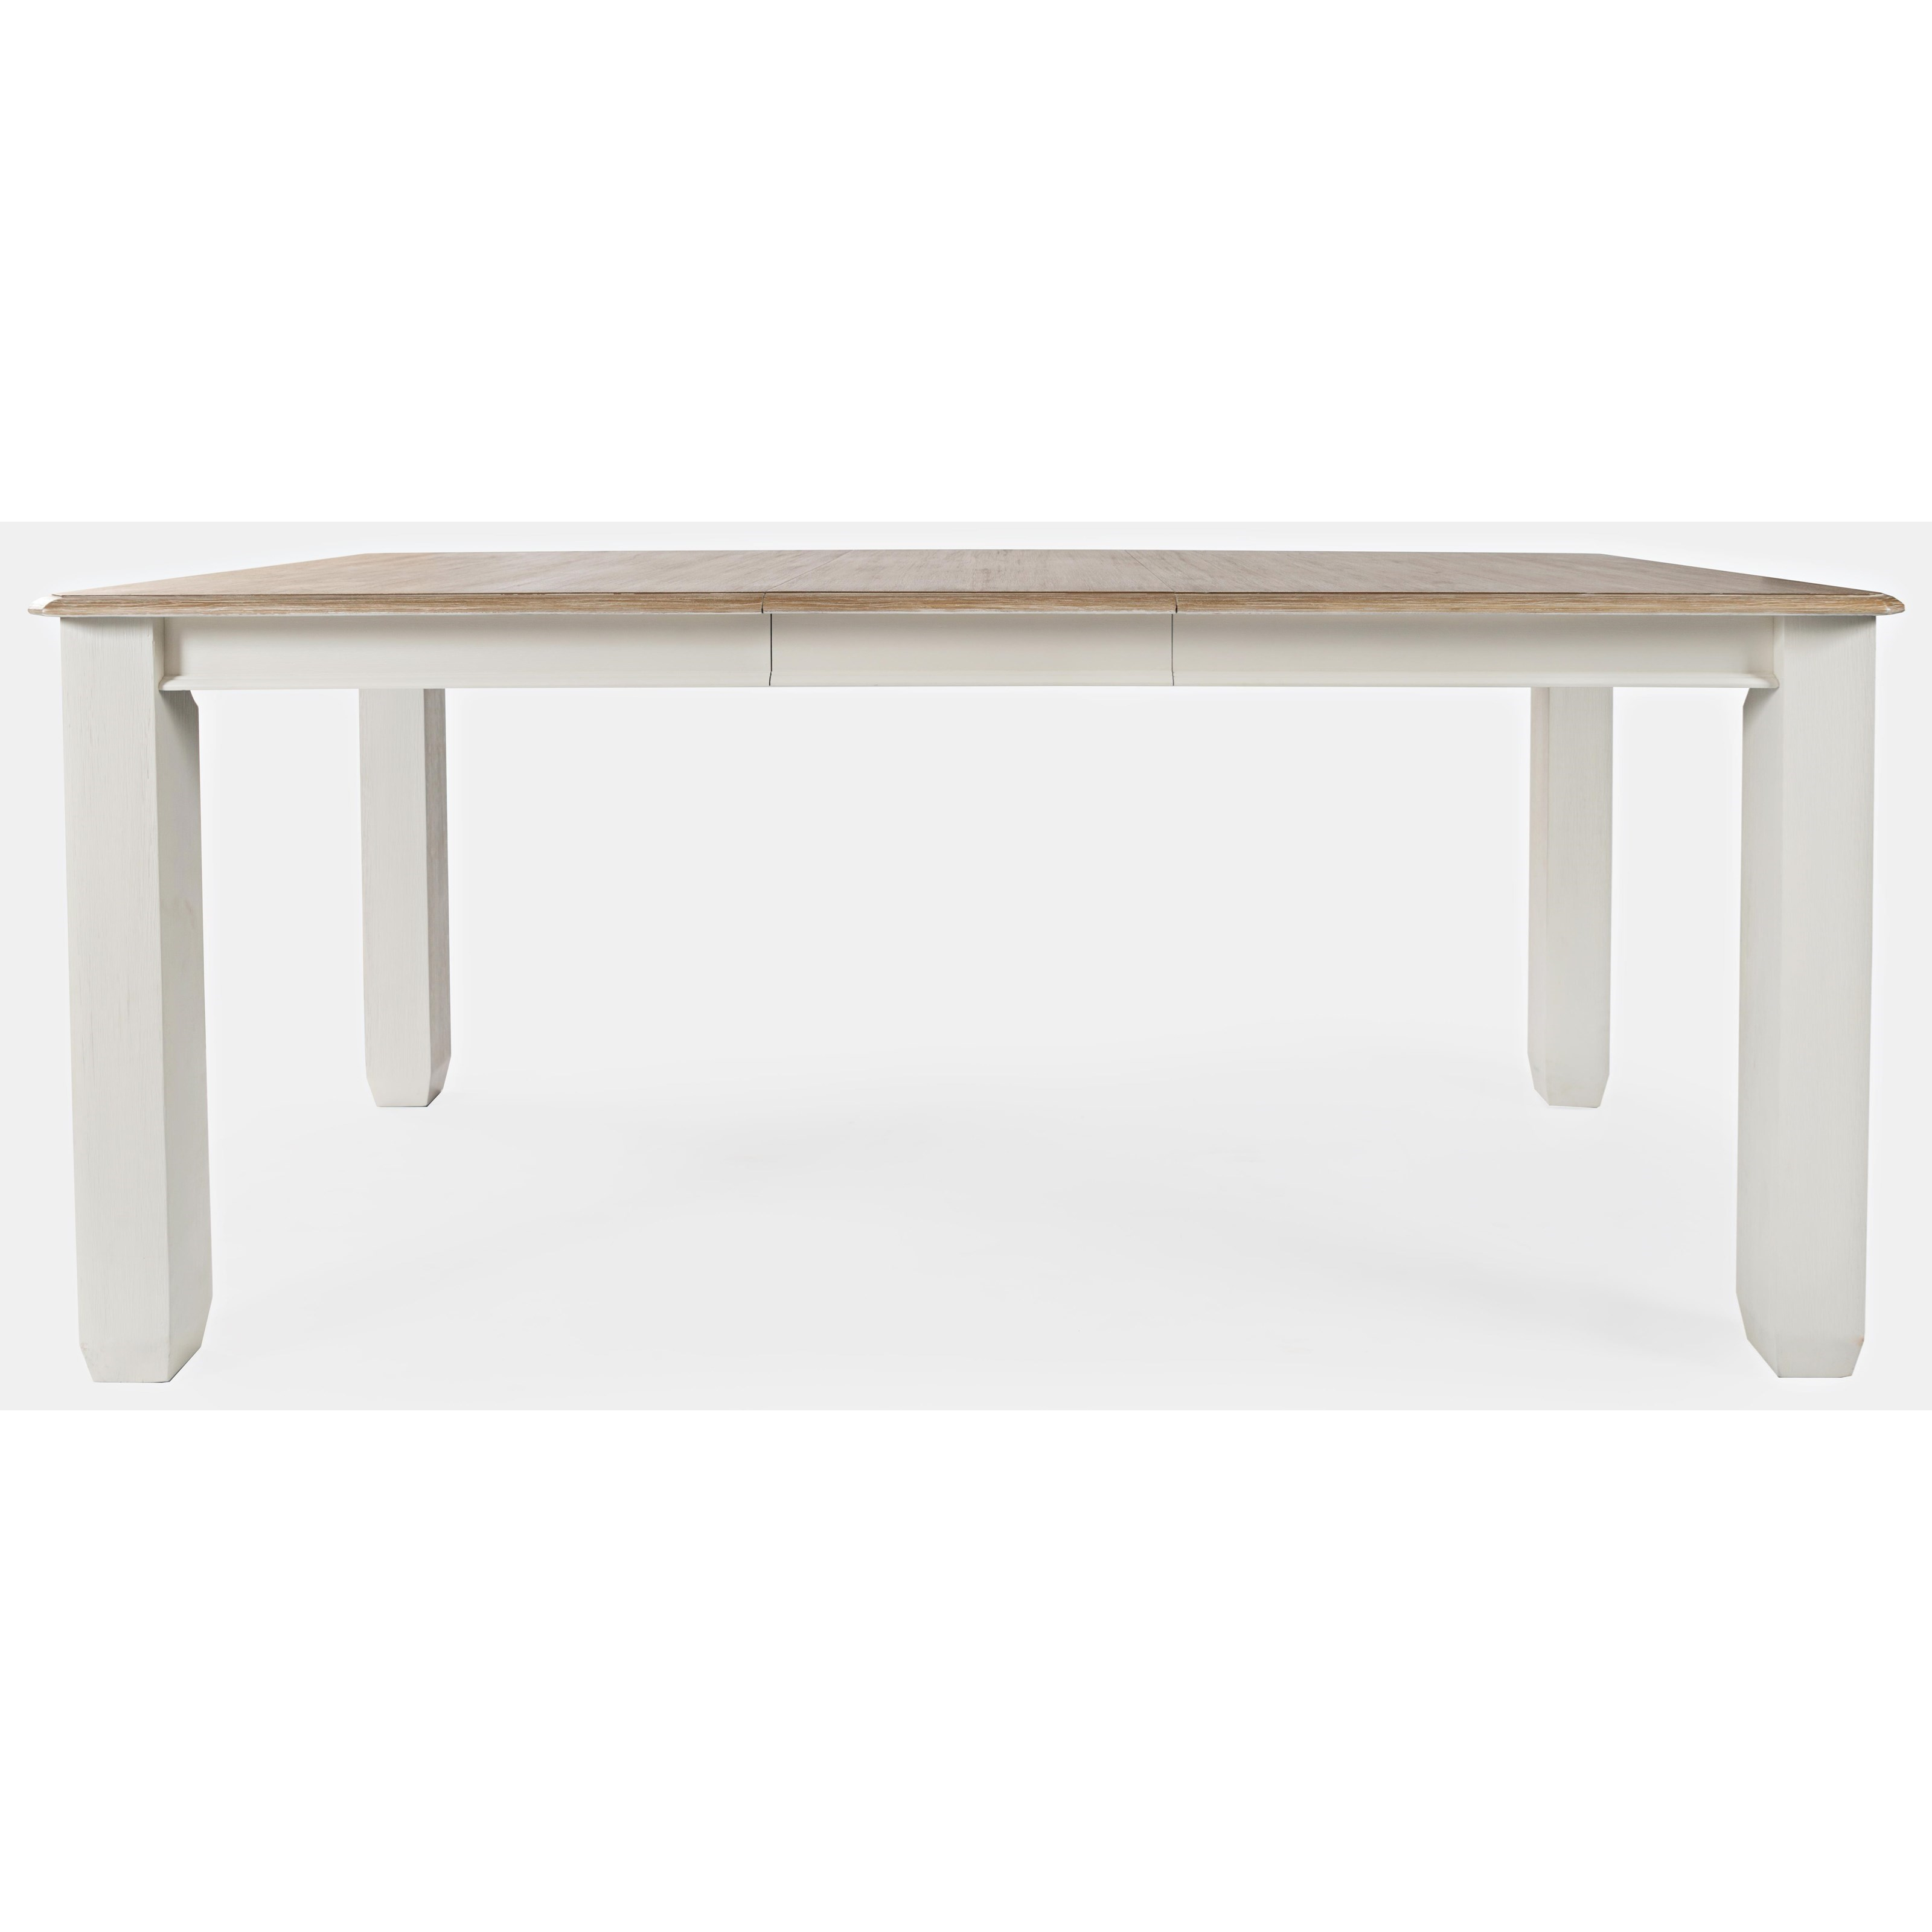 Dana Point Extension Counter Height Table by Jofran at Sparks HomeStore